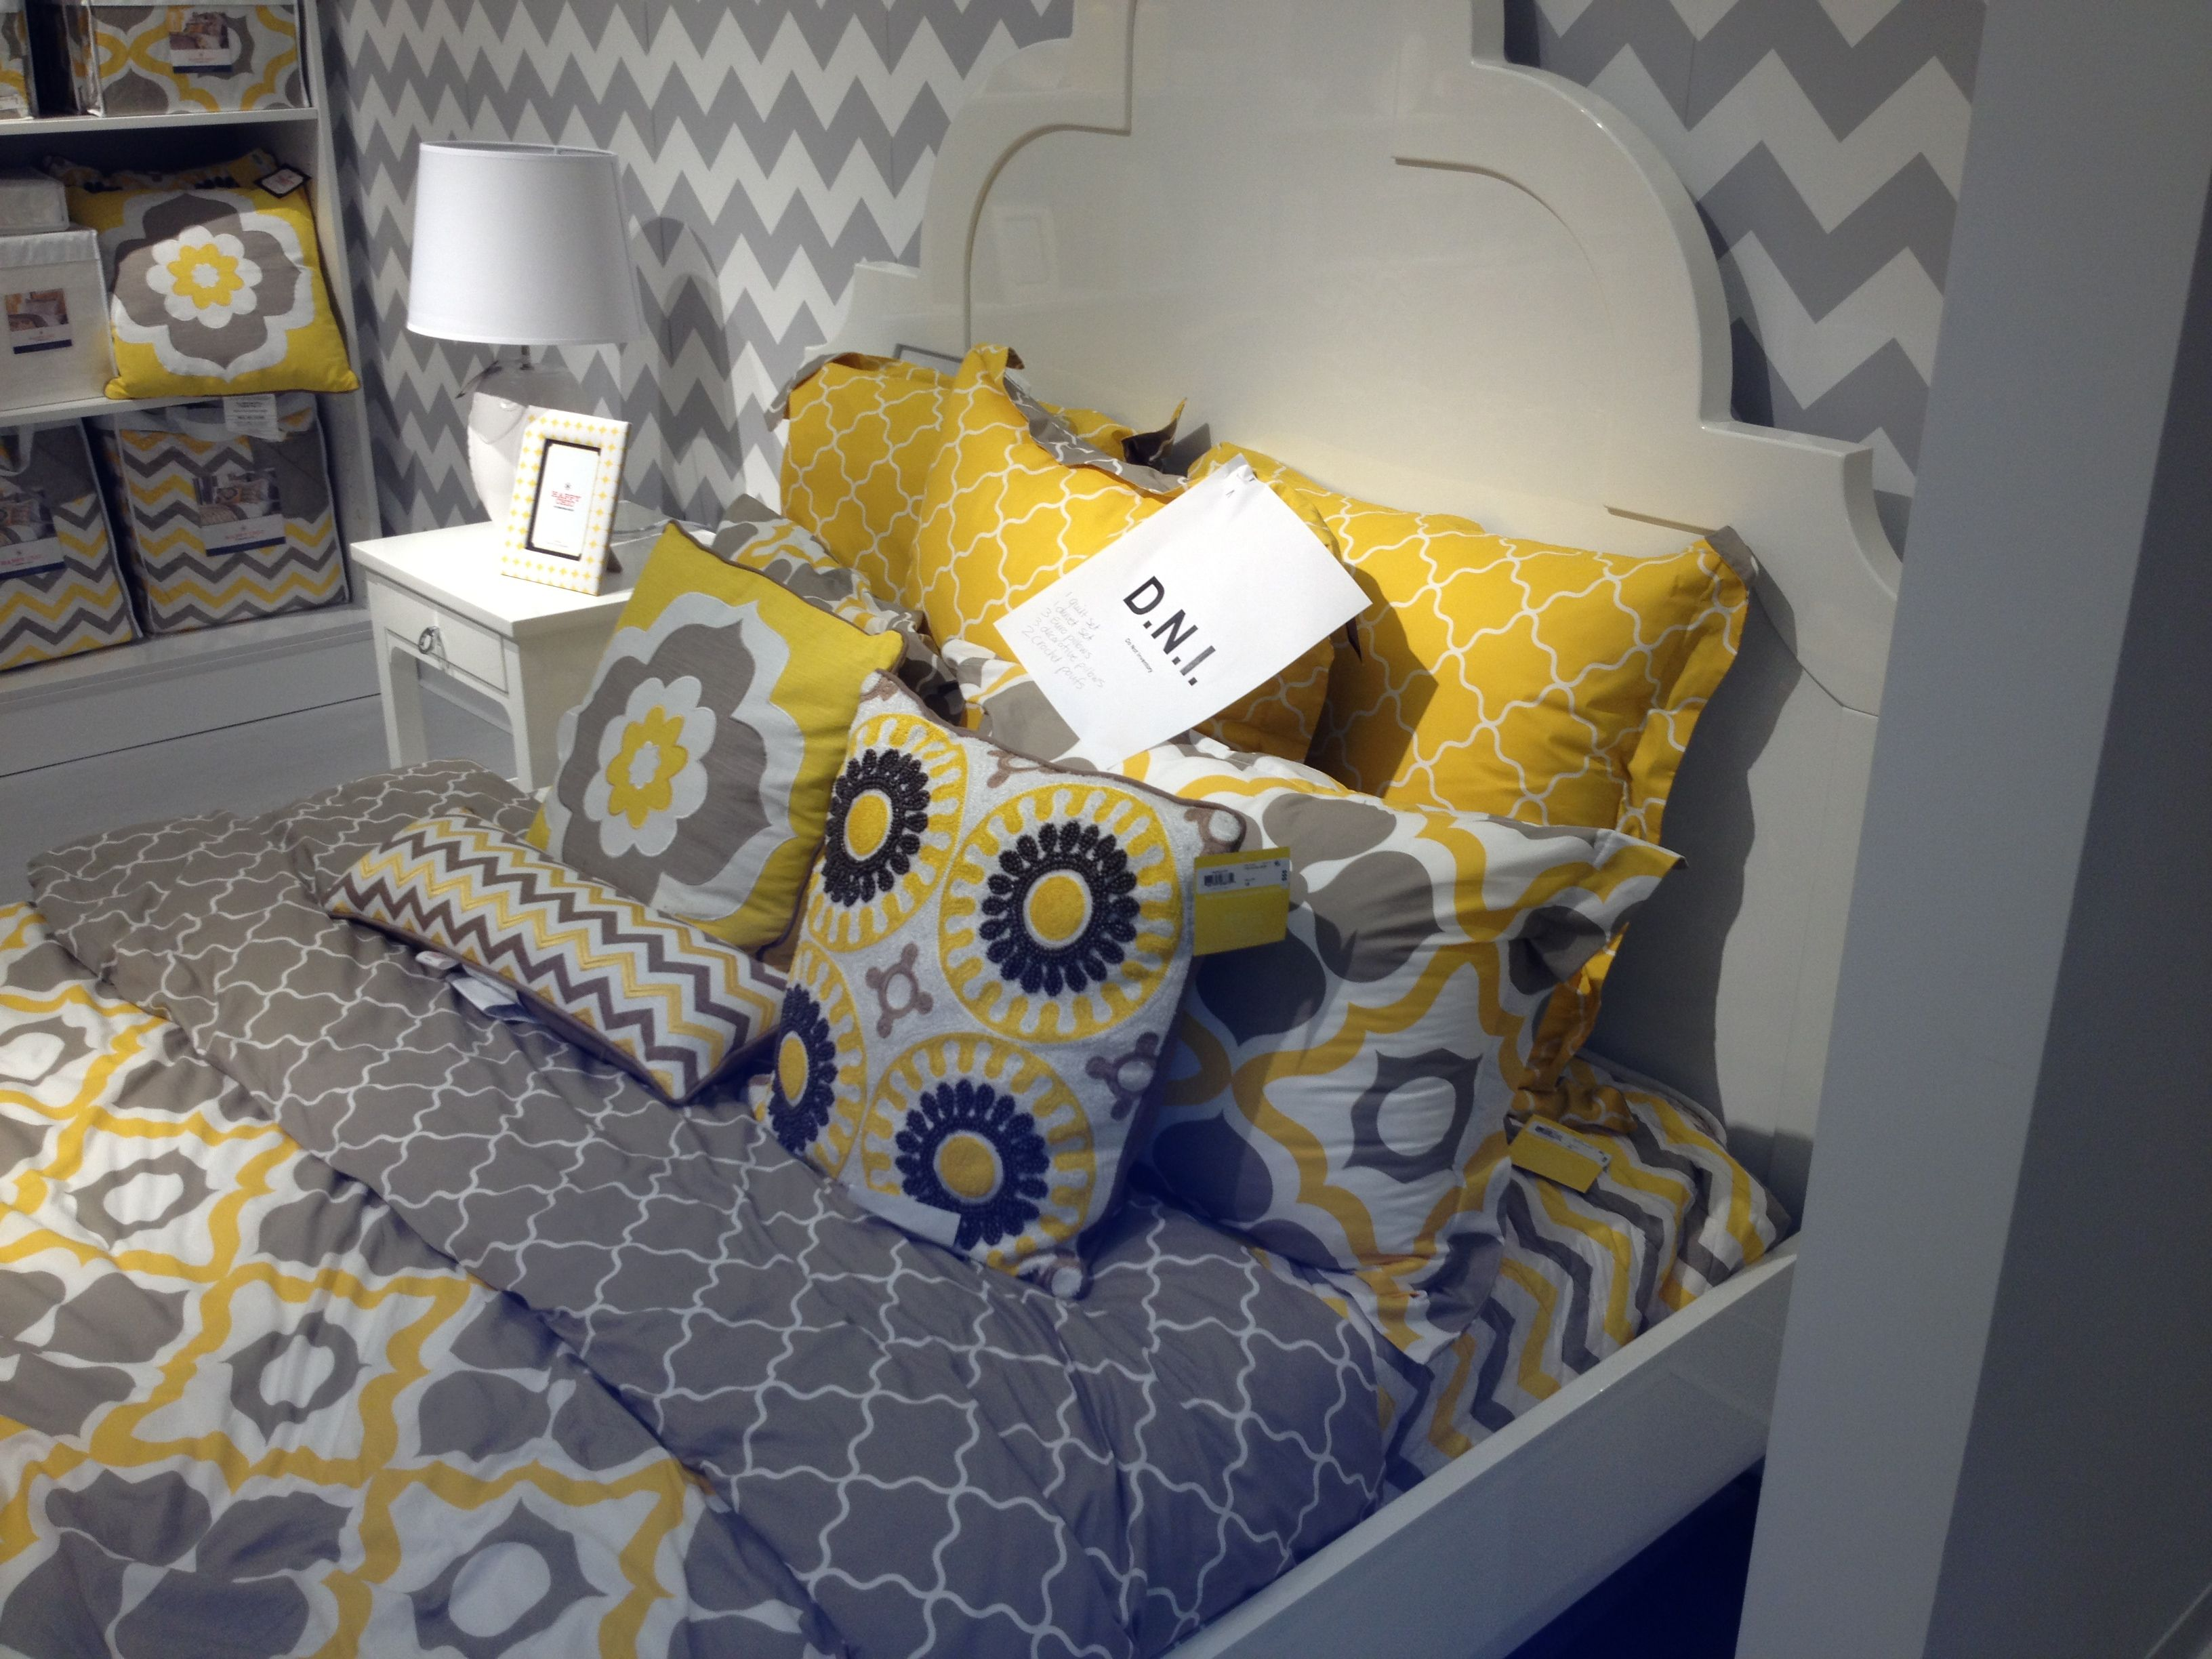 Blown away by jcpenney furniture so I started shooting photos in the ...